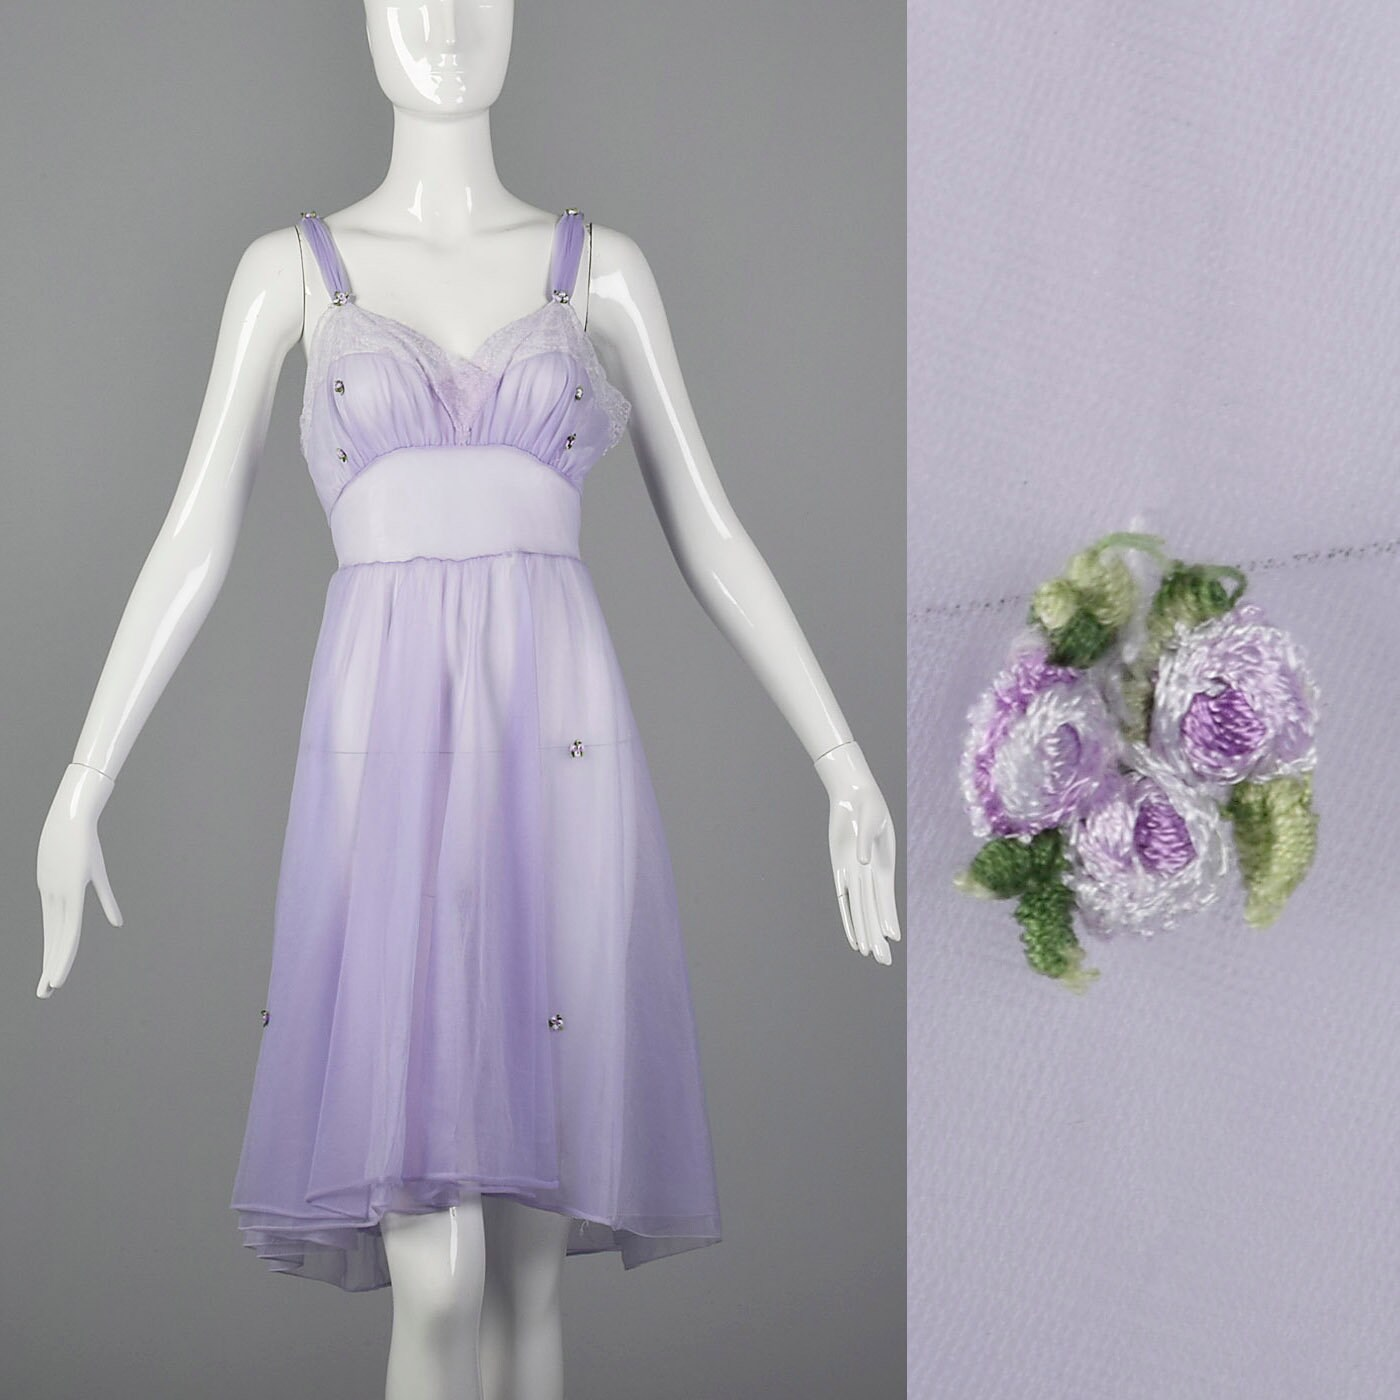 04e8a6f553 Small 1950s Nightgown Sheer Purple Nightgown Floral Appliques